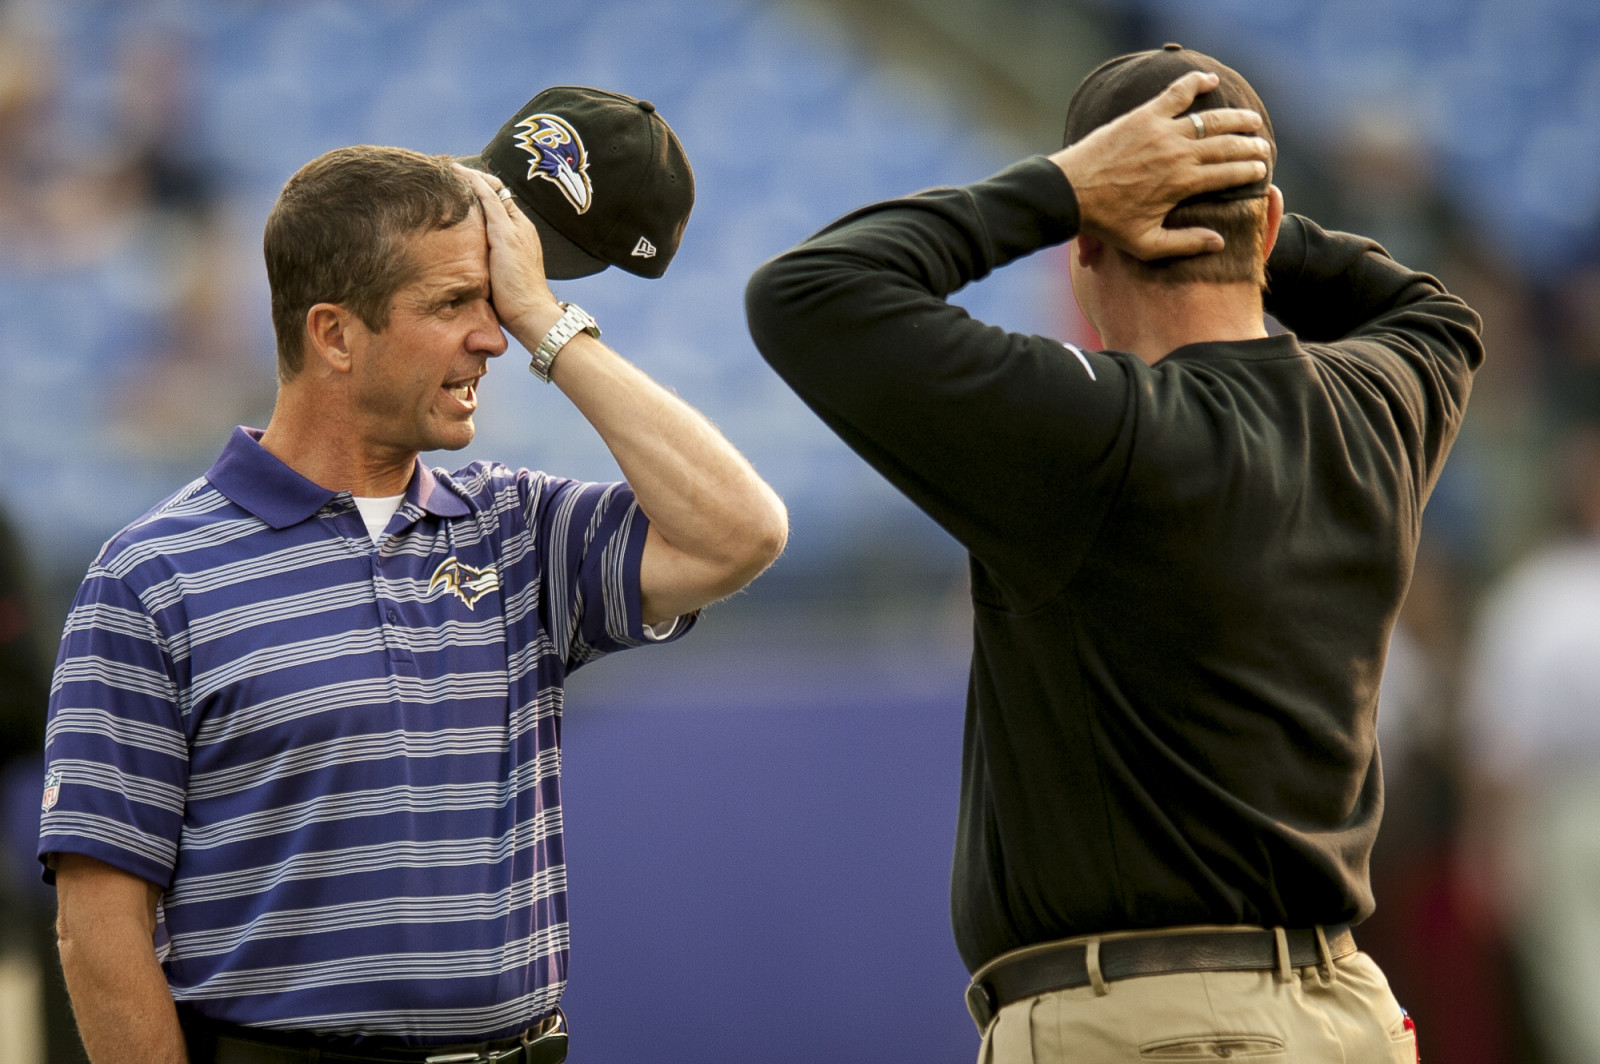 Baltimore Ravens head coach John Harbaugh talks with his brother and 49ers head coach, Jim Harbaugh before their preseason game against the San Francisco 49ers at M&T Bank Stadium on August 7, 2014 in Baltimore, Maryland. UPI/Pete Marovich